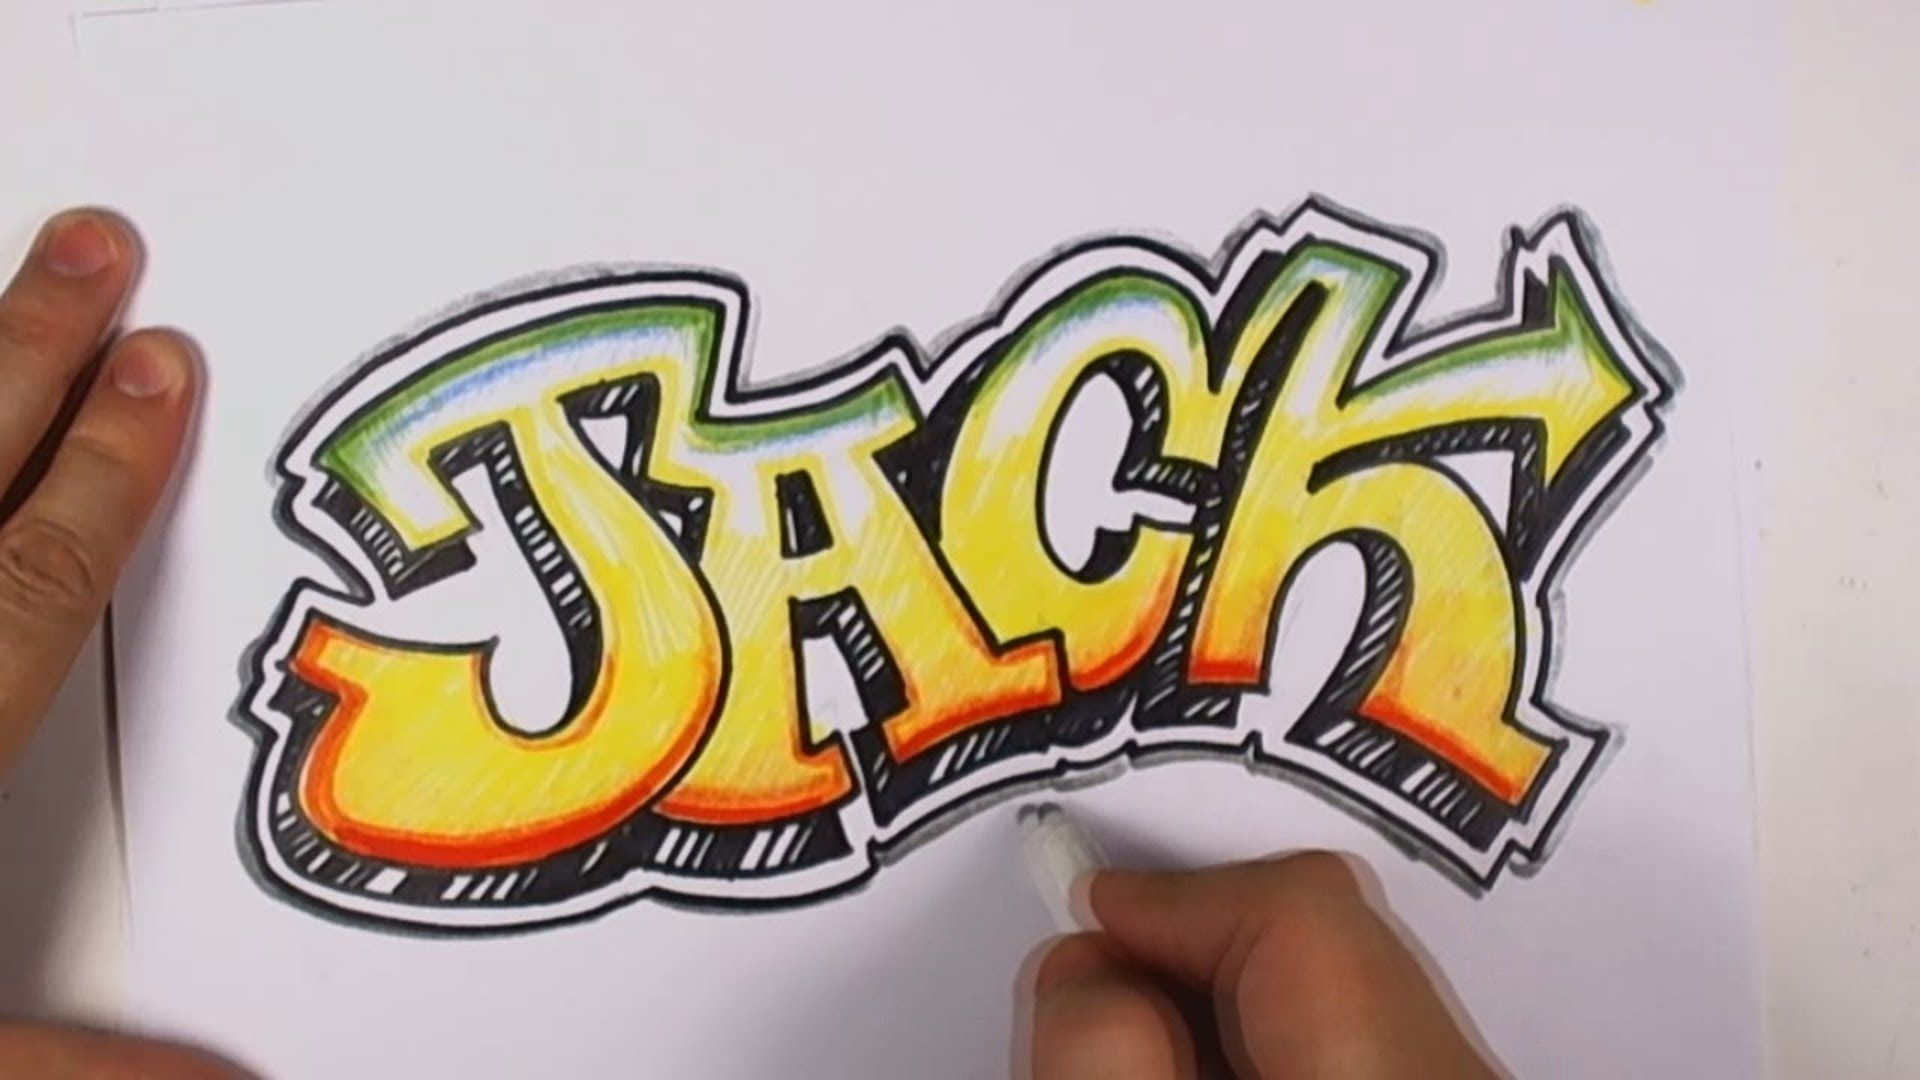 How to Draw Graffiti Letters Jack in Graffiti Lettering